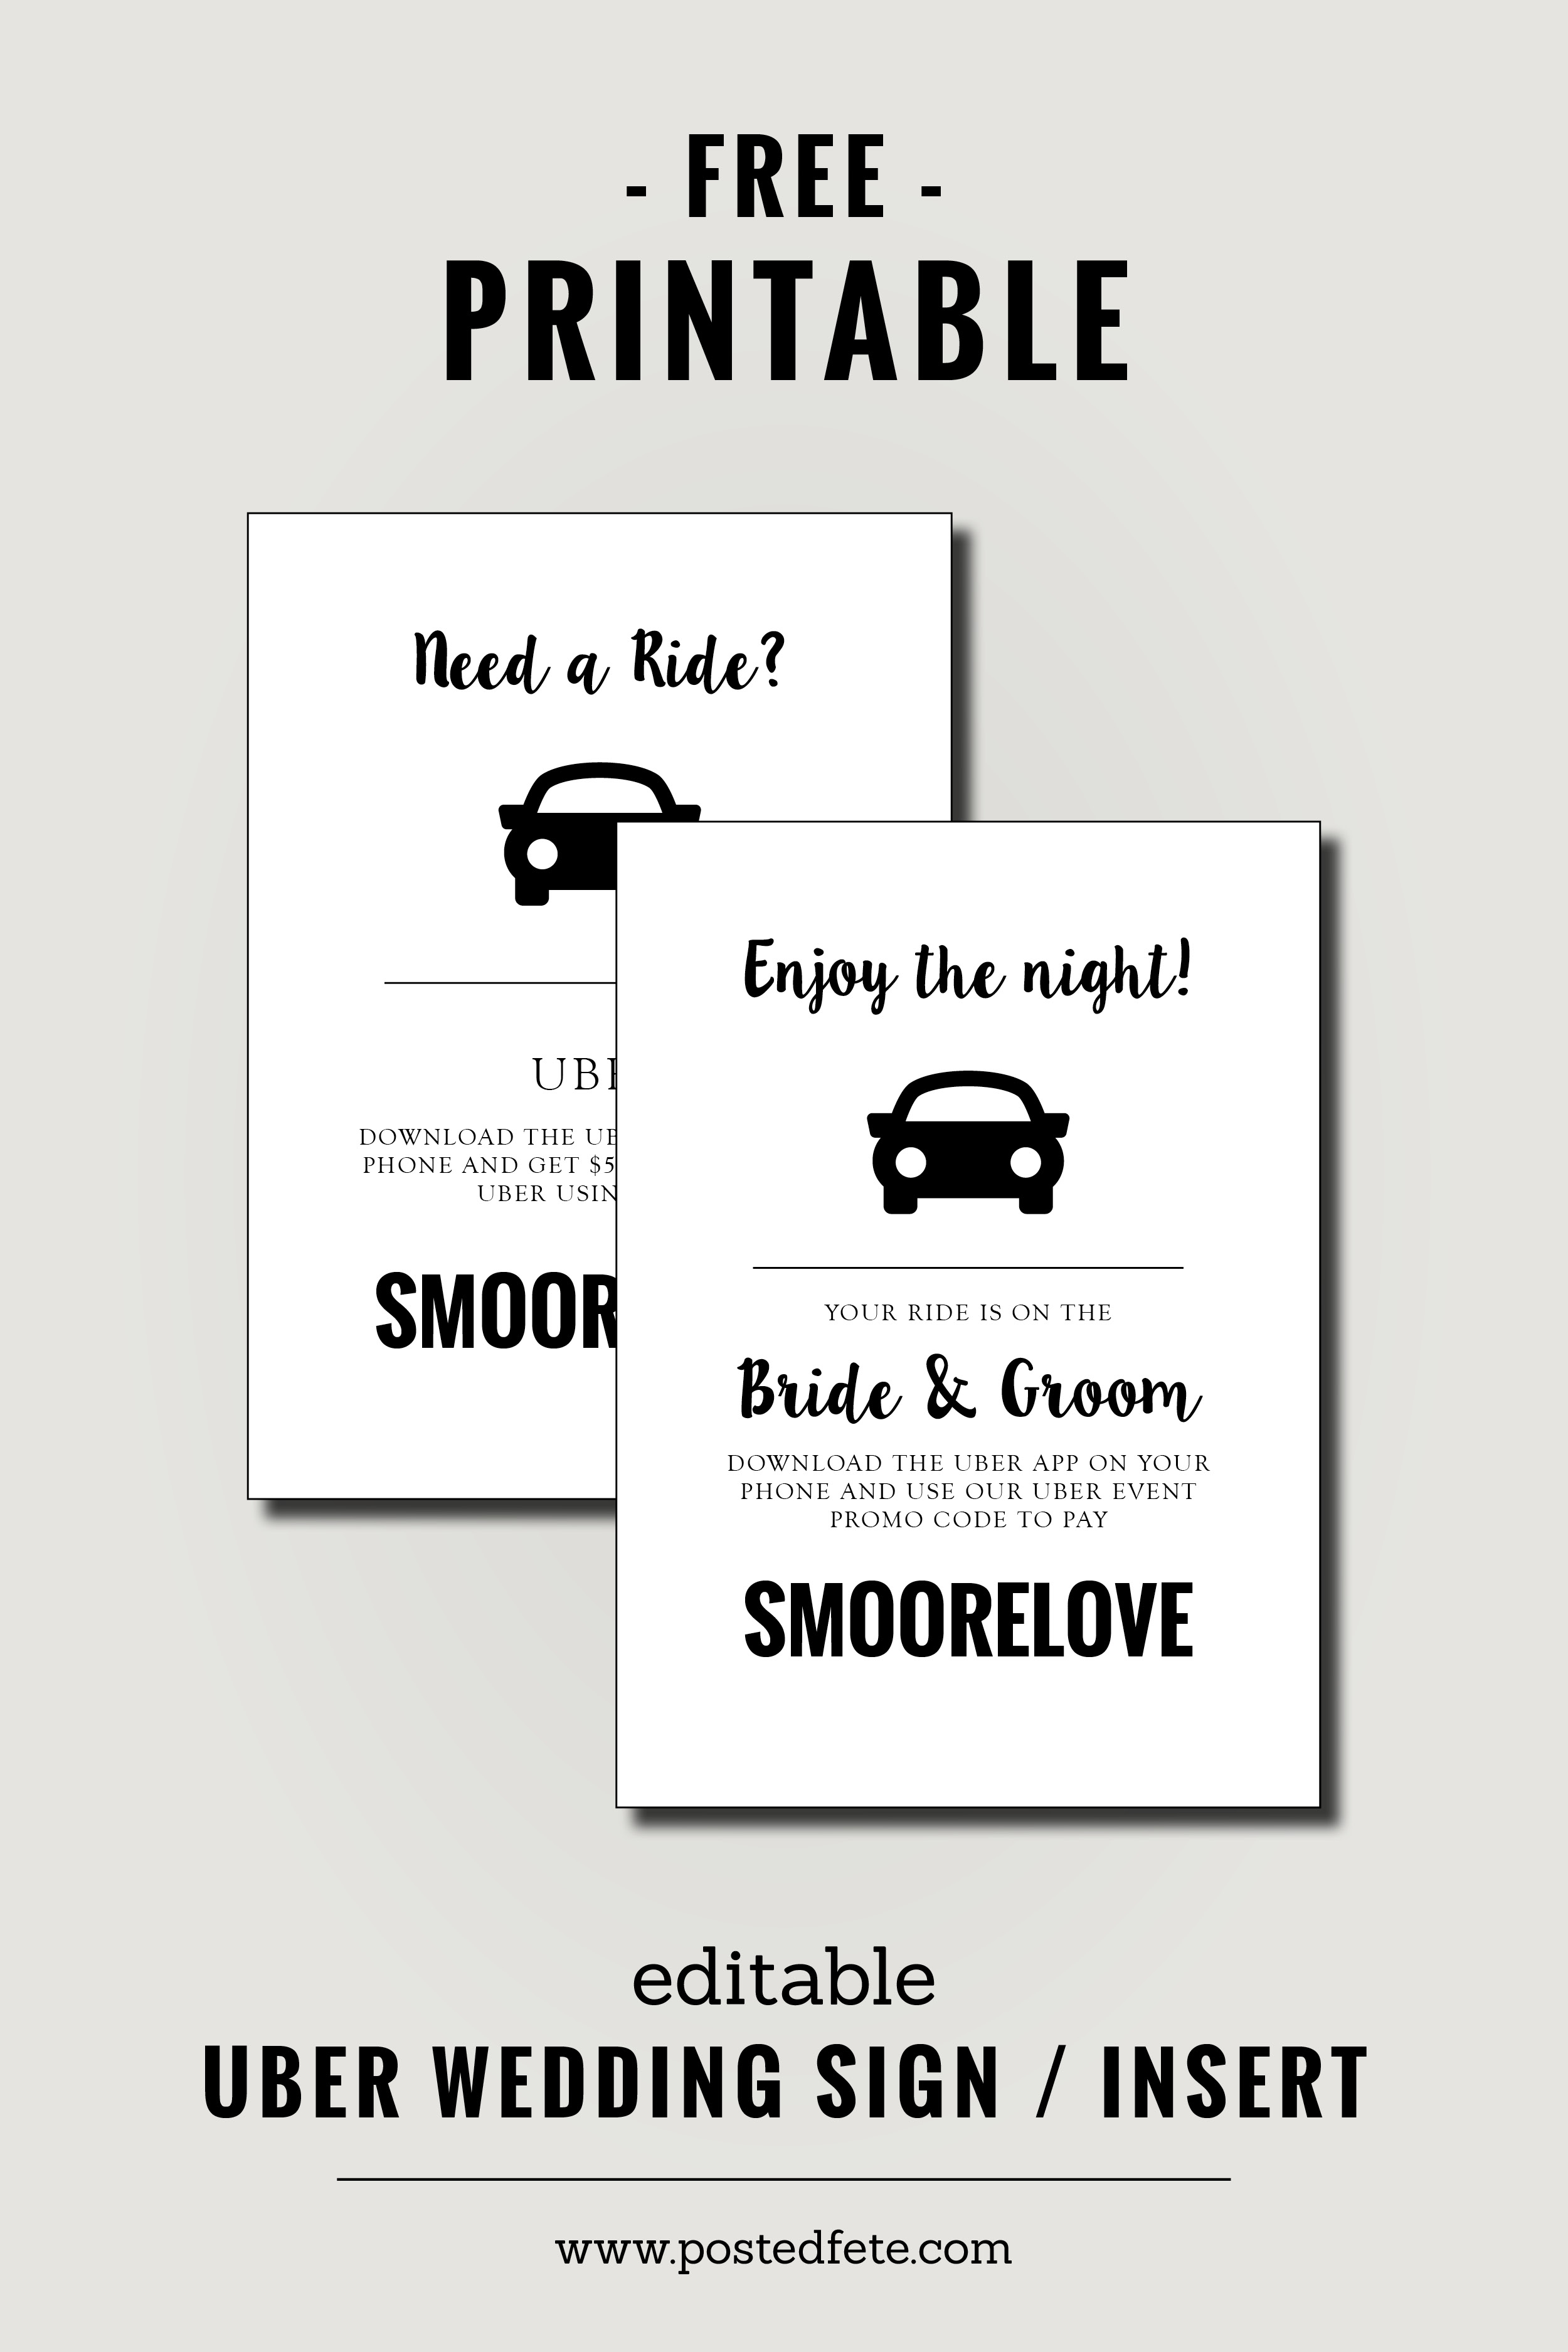 image about Uber Sign Printable named Savvy wedding ceremony guidelines for developing a straightforward exquisite wedding ceremony